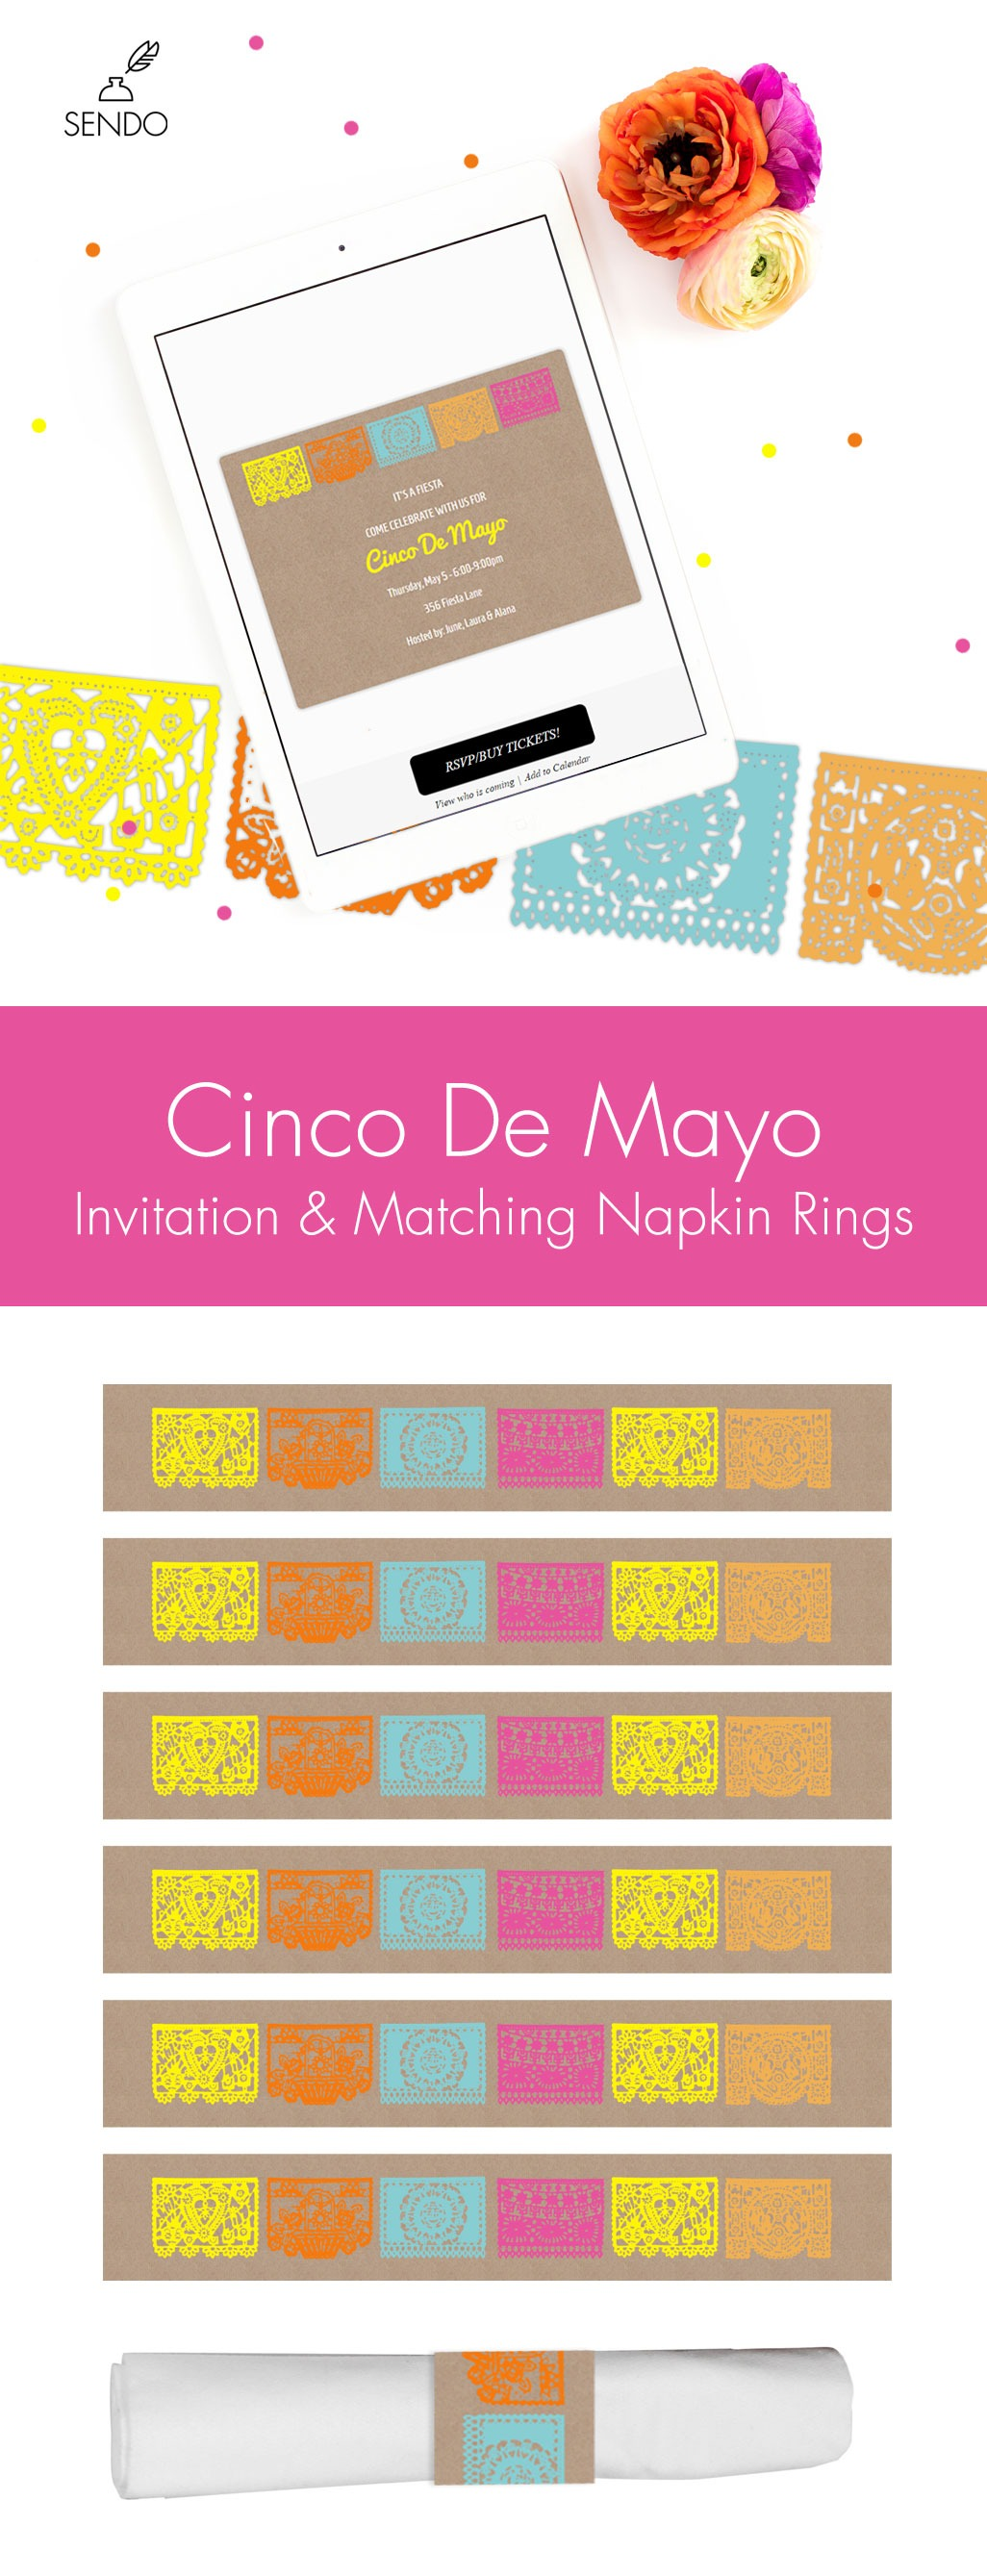 Cinco De Mayo Party Invitation & Napkin Ring Printable